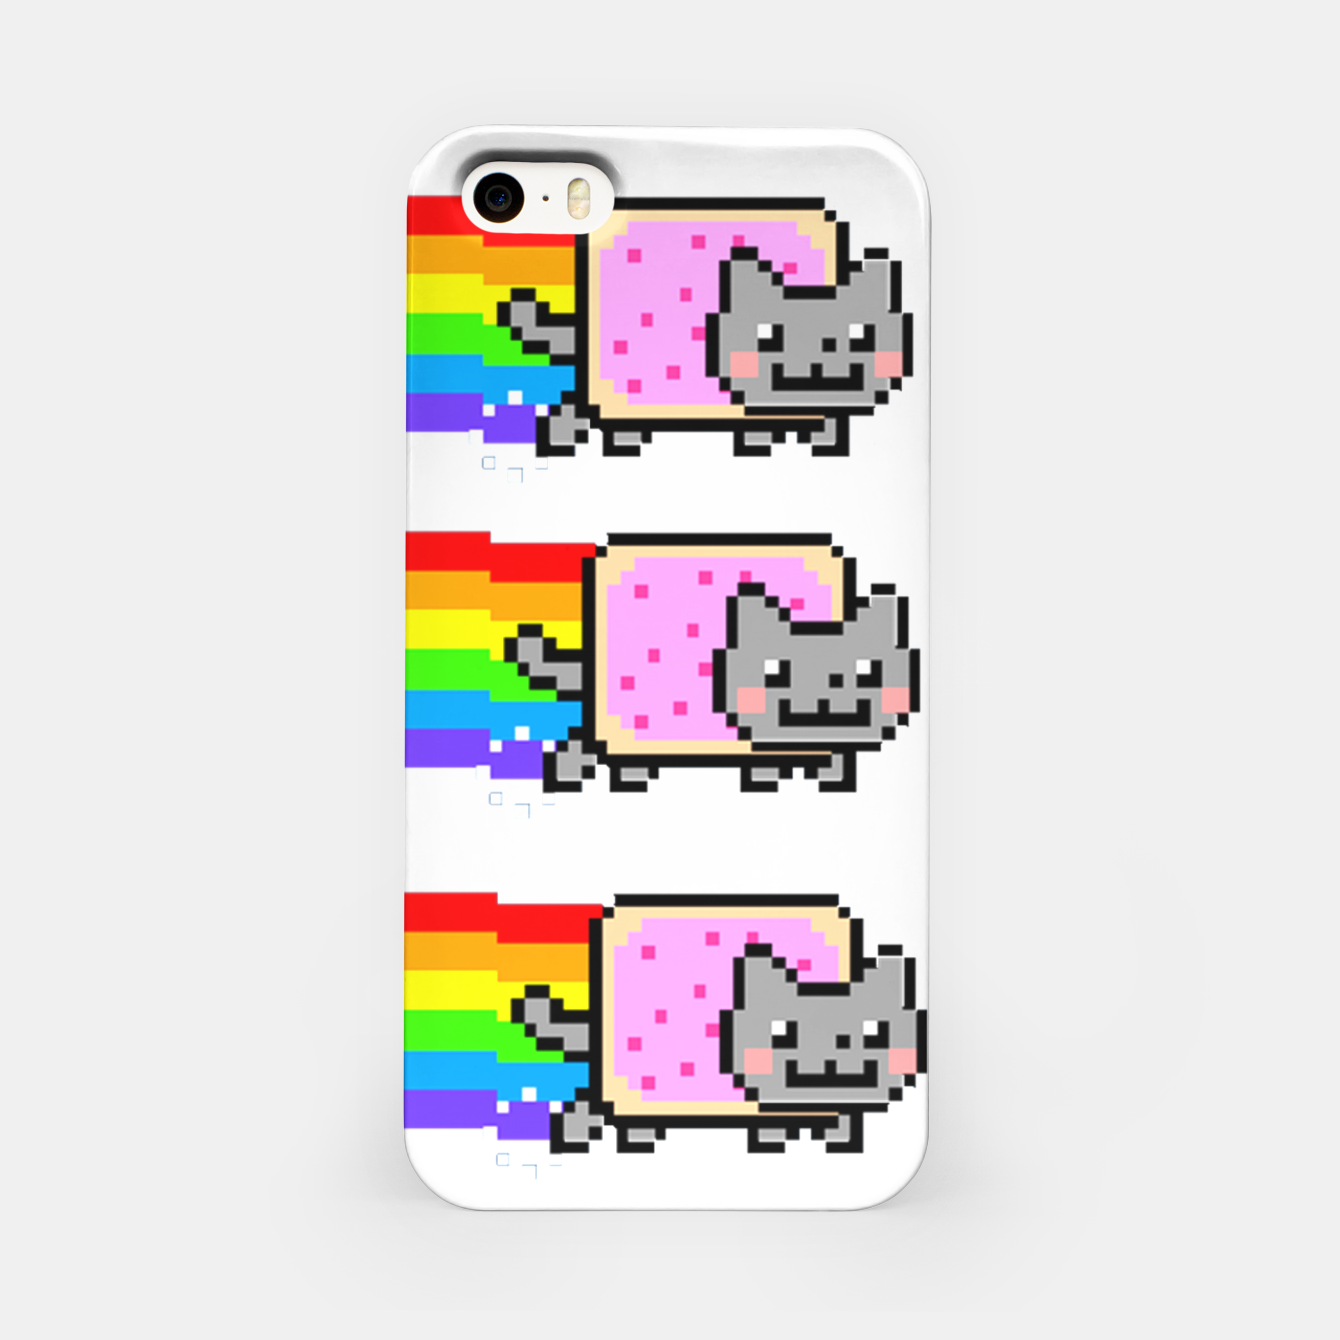 1340x1340 - Nyan Cat iPhone 21